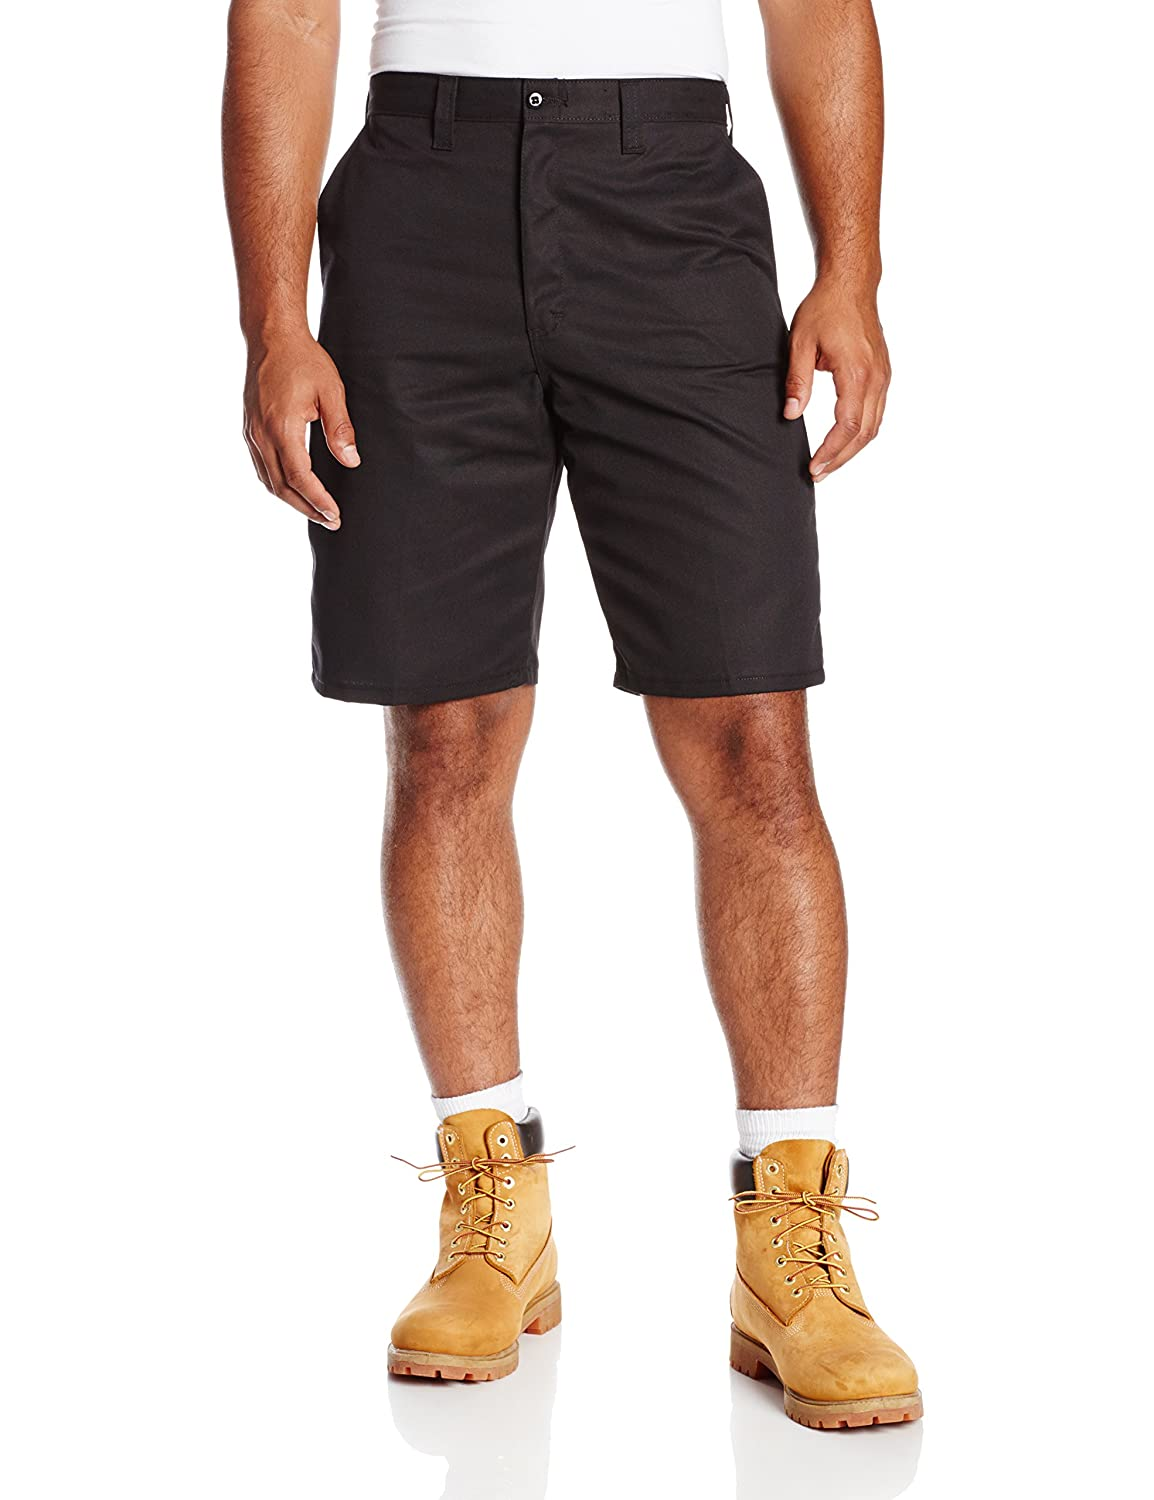 Dickies Occupational Workwear LR303BK 46 Polyester/ Cotton Relaxed Fit Men's Industrial Flat Front Short with Button Closure, 46 Waist Size, 11 Inseam, Black 46 Waist Size 11 Inseam